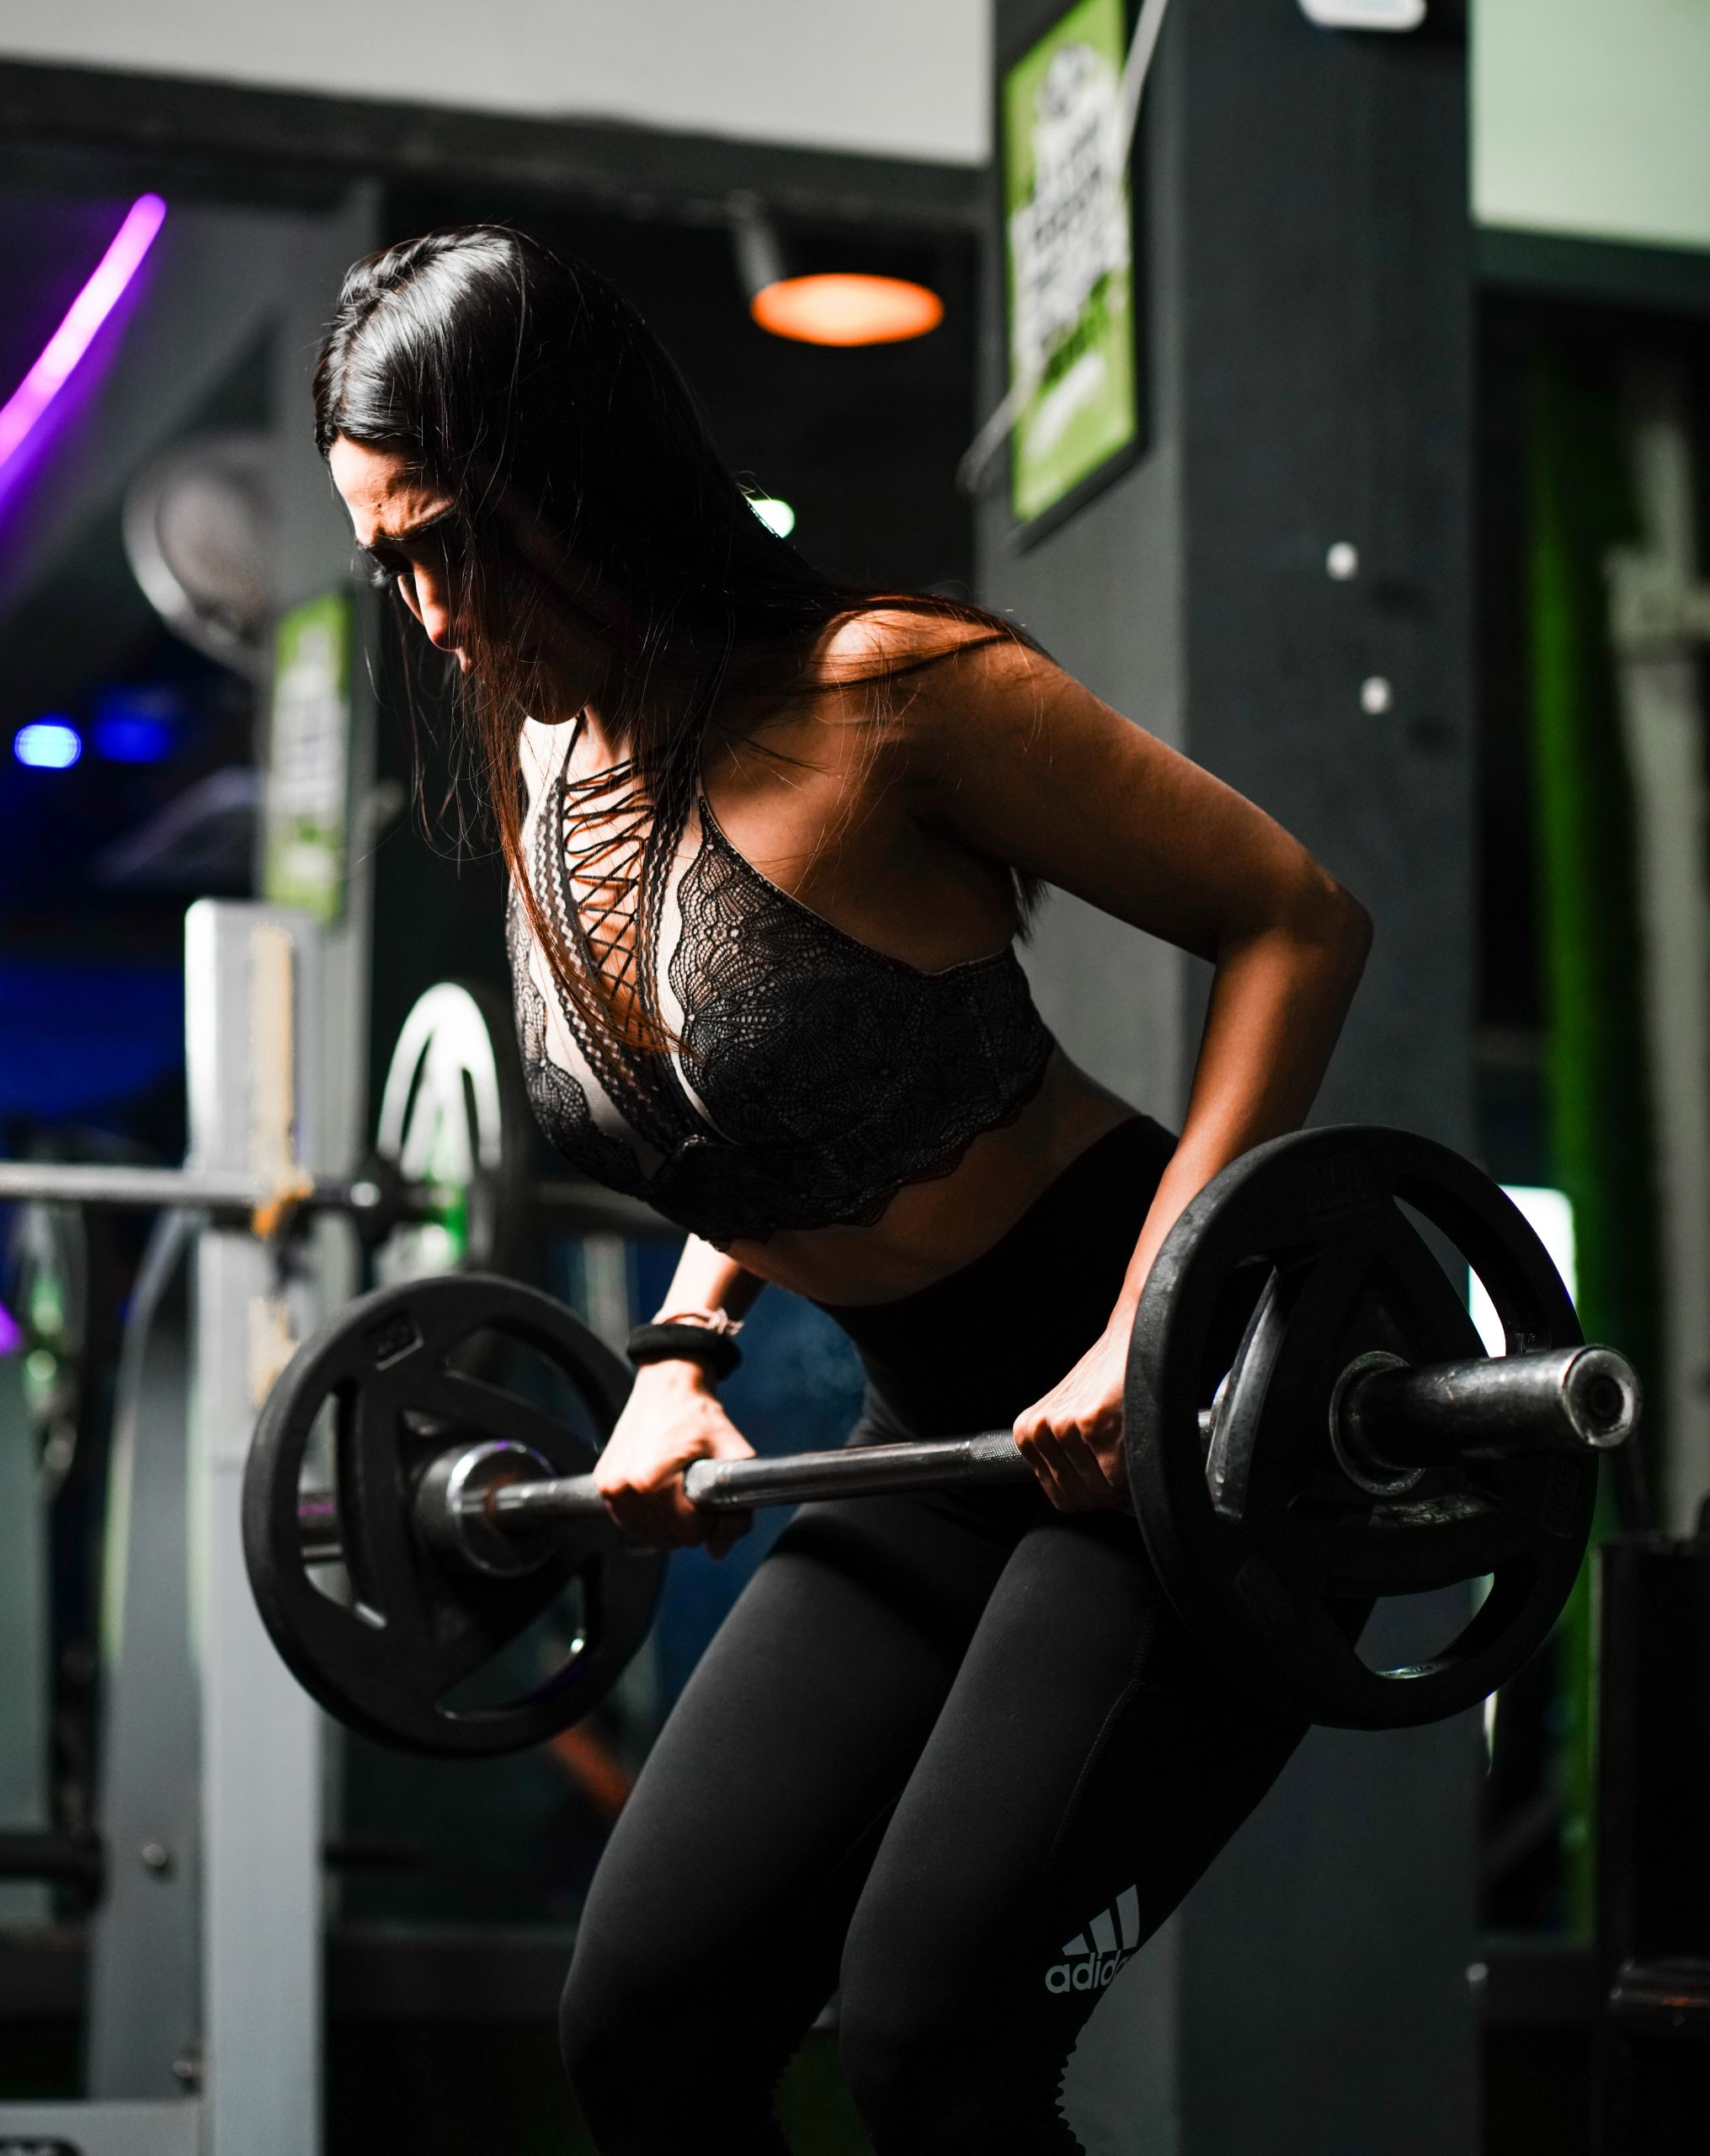 A Woman doing a weight lifting